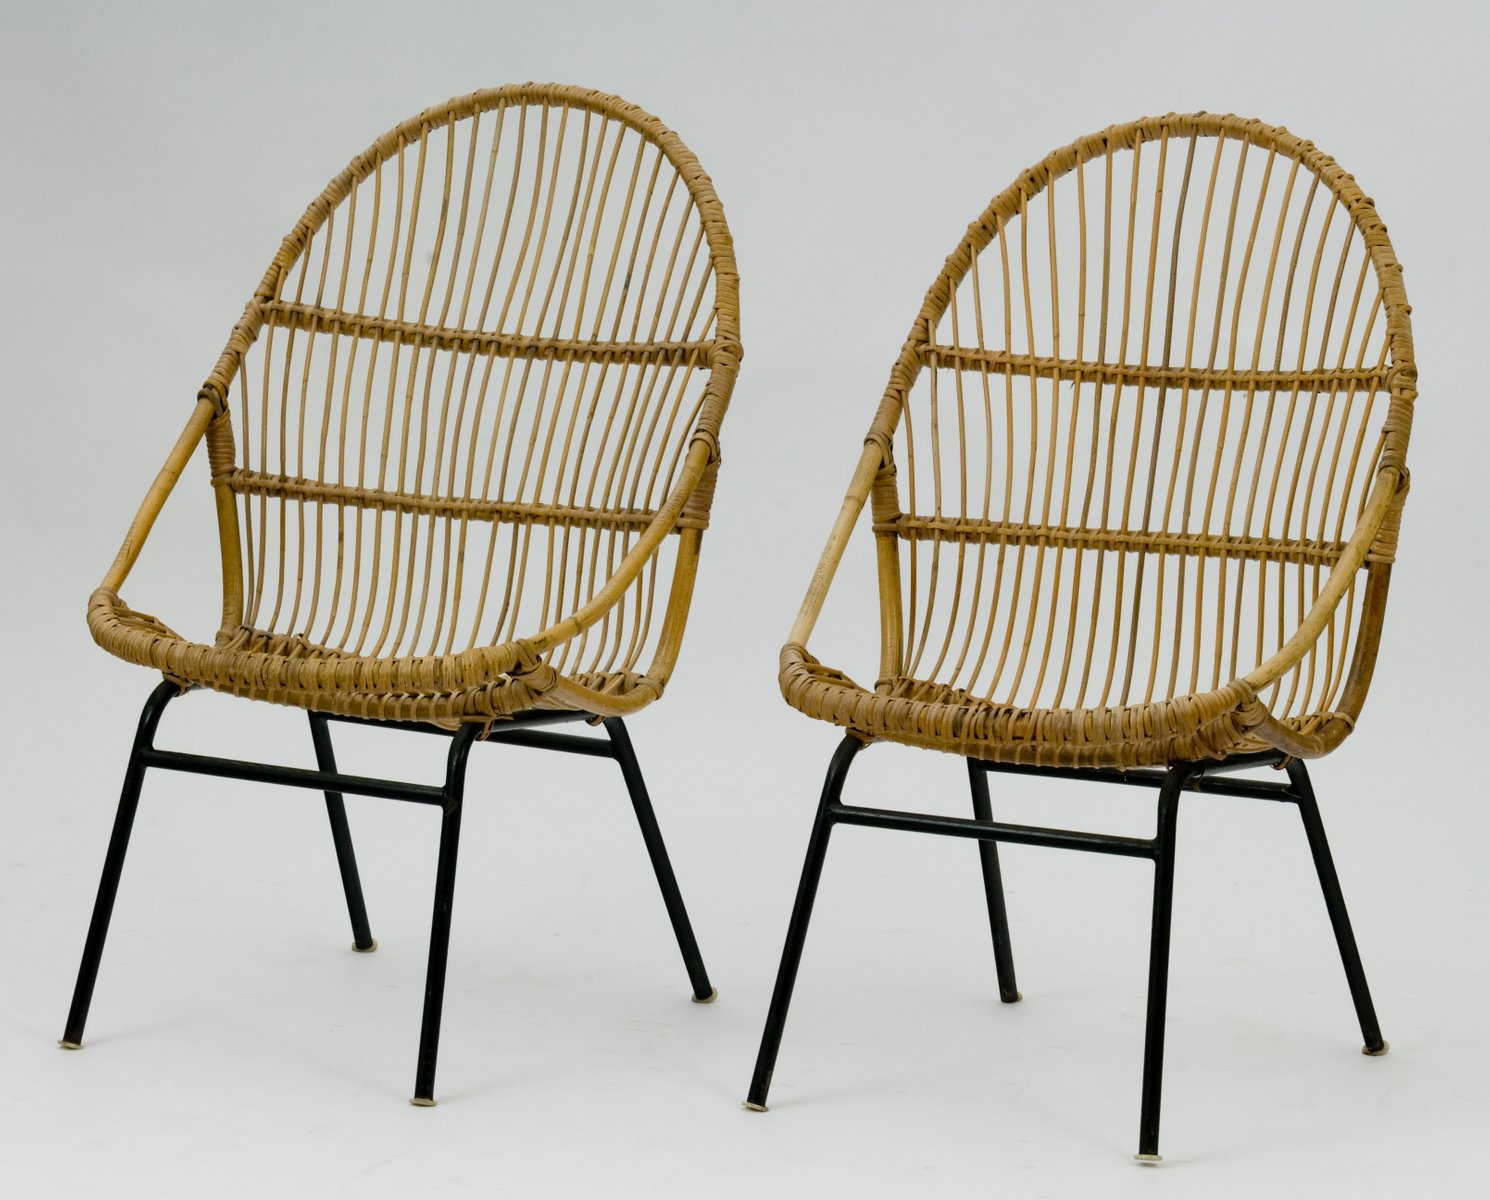 vintage rattan st hle von alan fuchs f r luv 2er set bei pamono kaufen. Black Bedroom Furniture Sets. Home Design Ideas